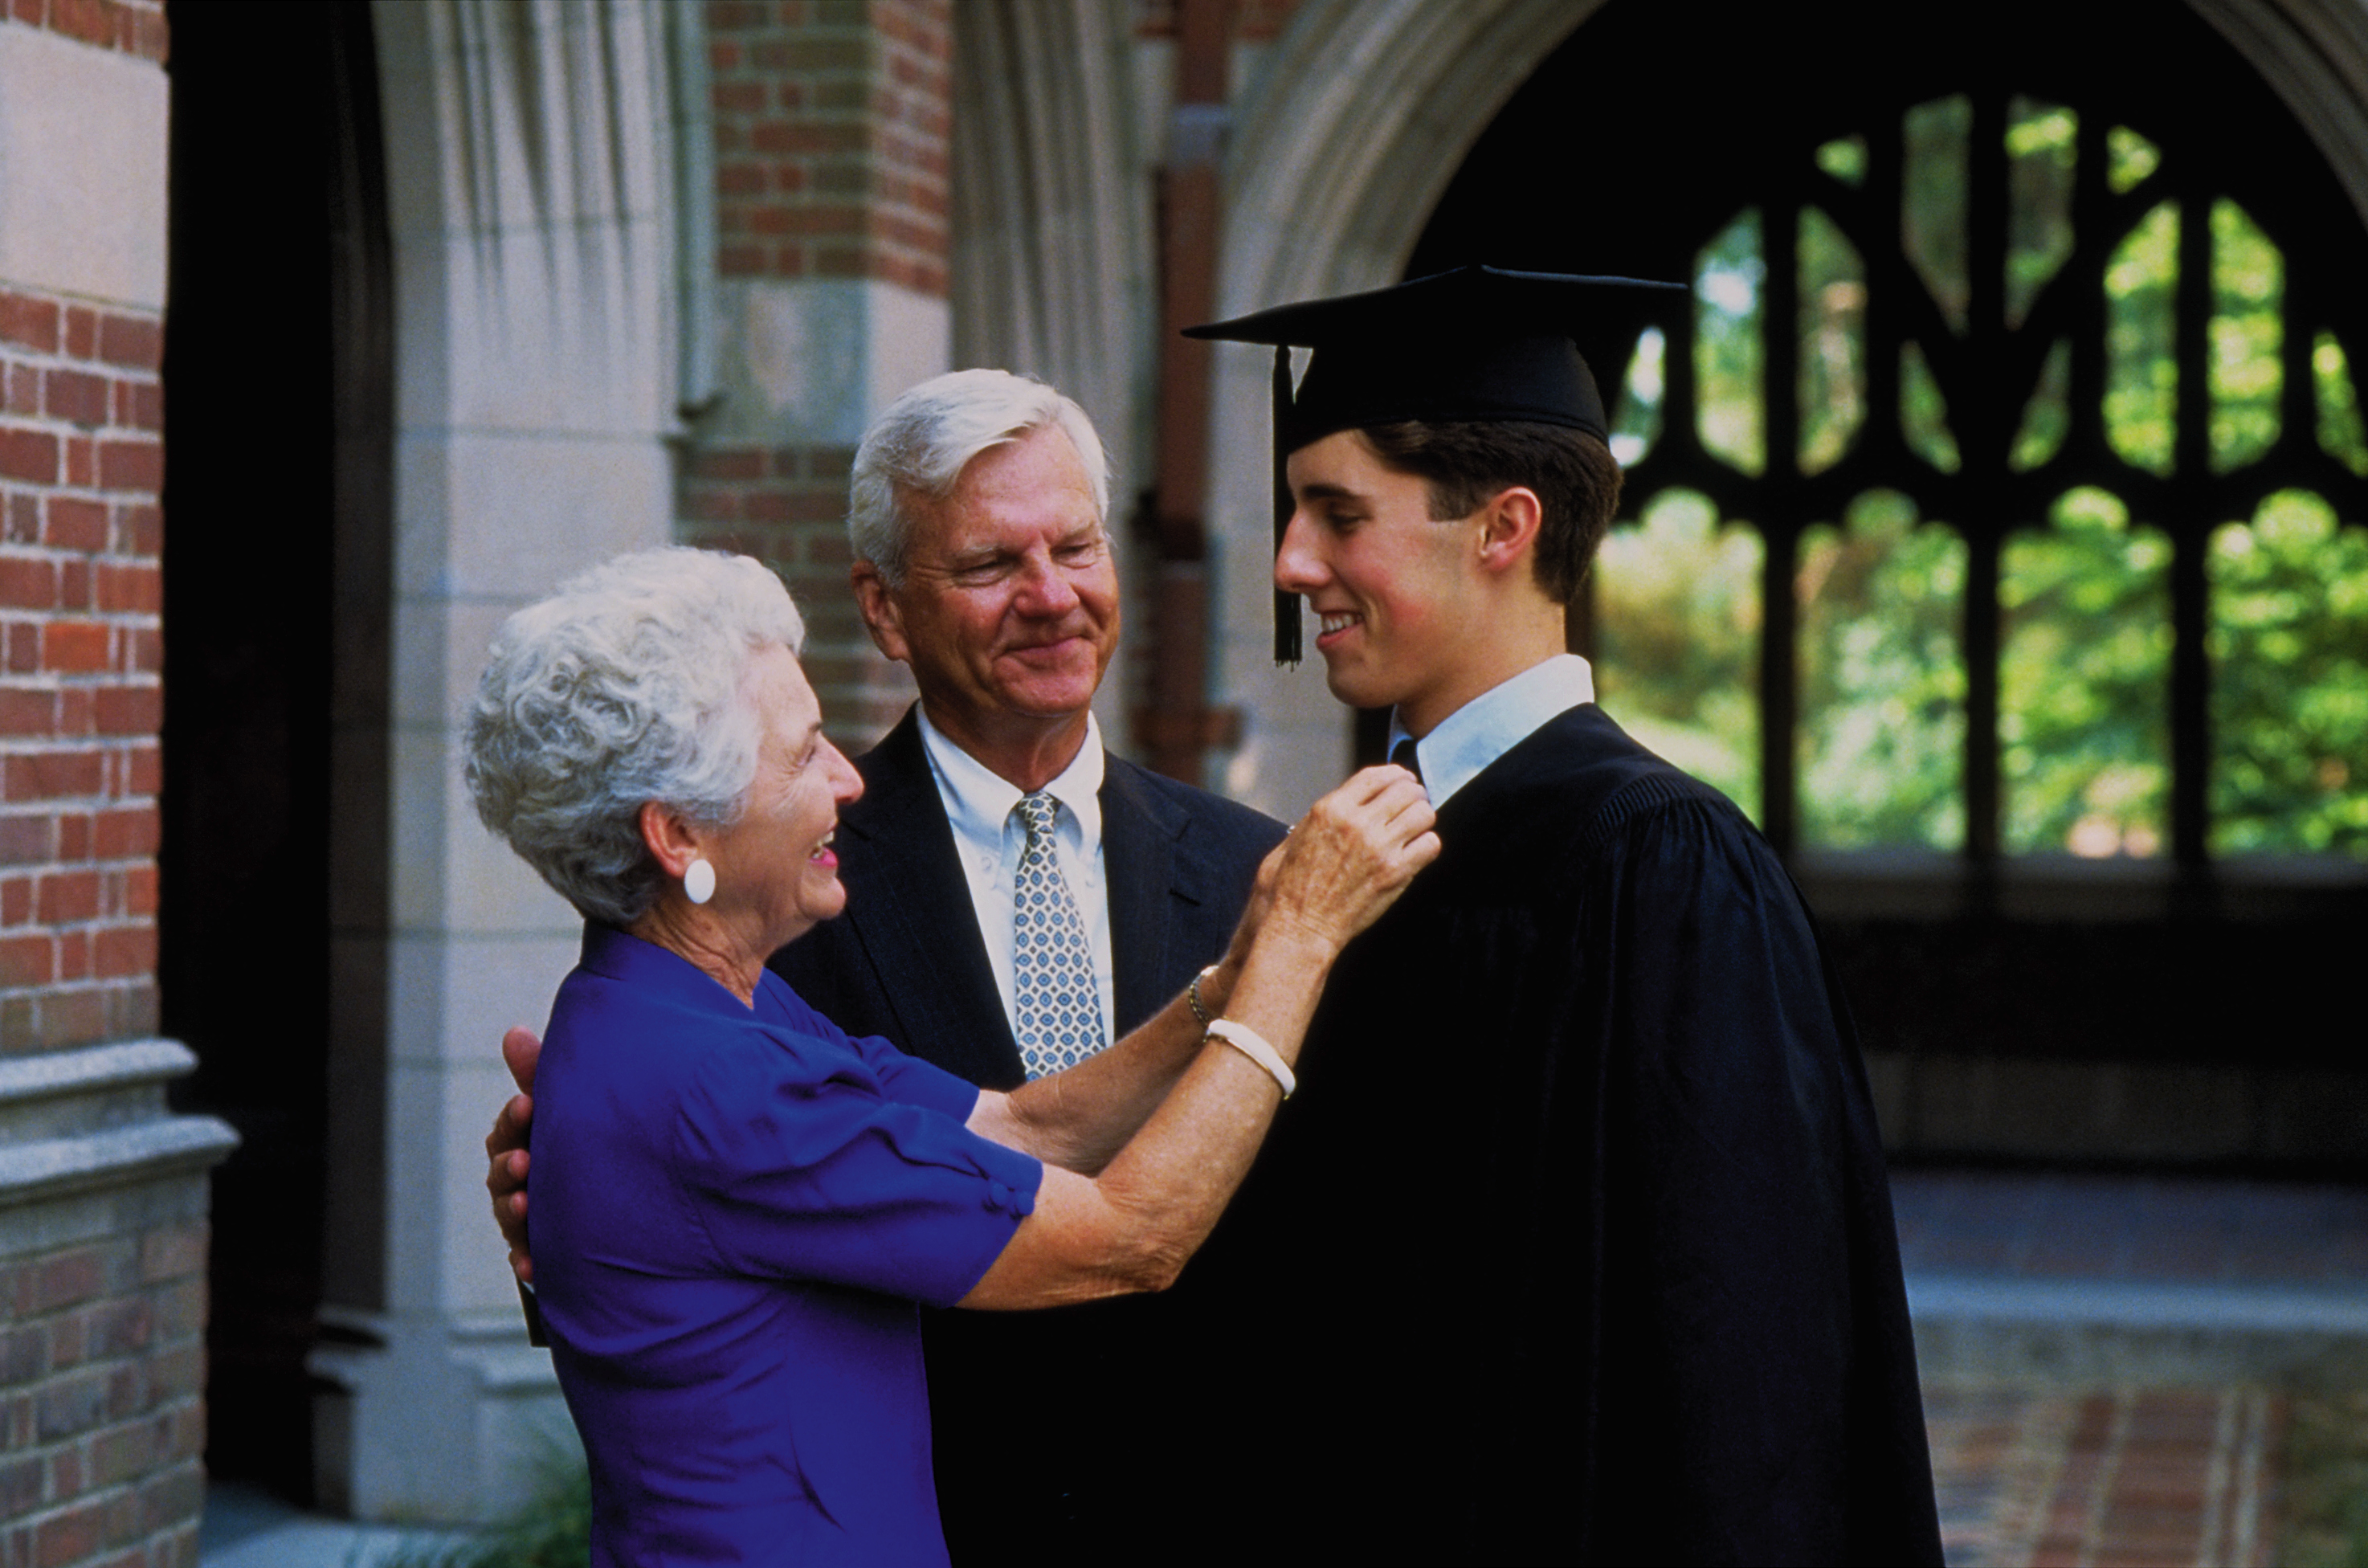 Proud parents talk with their son at his college graduation.